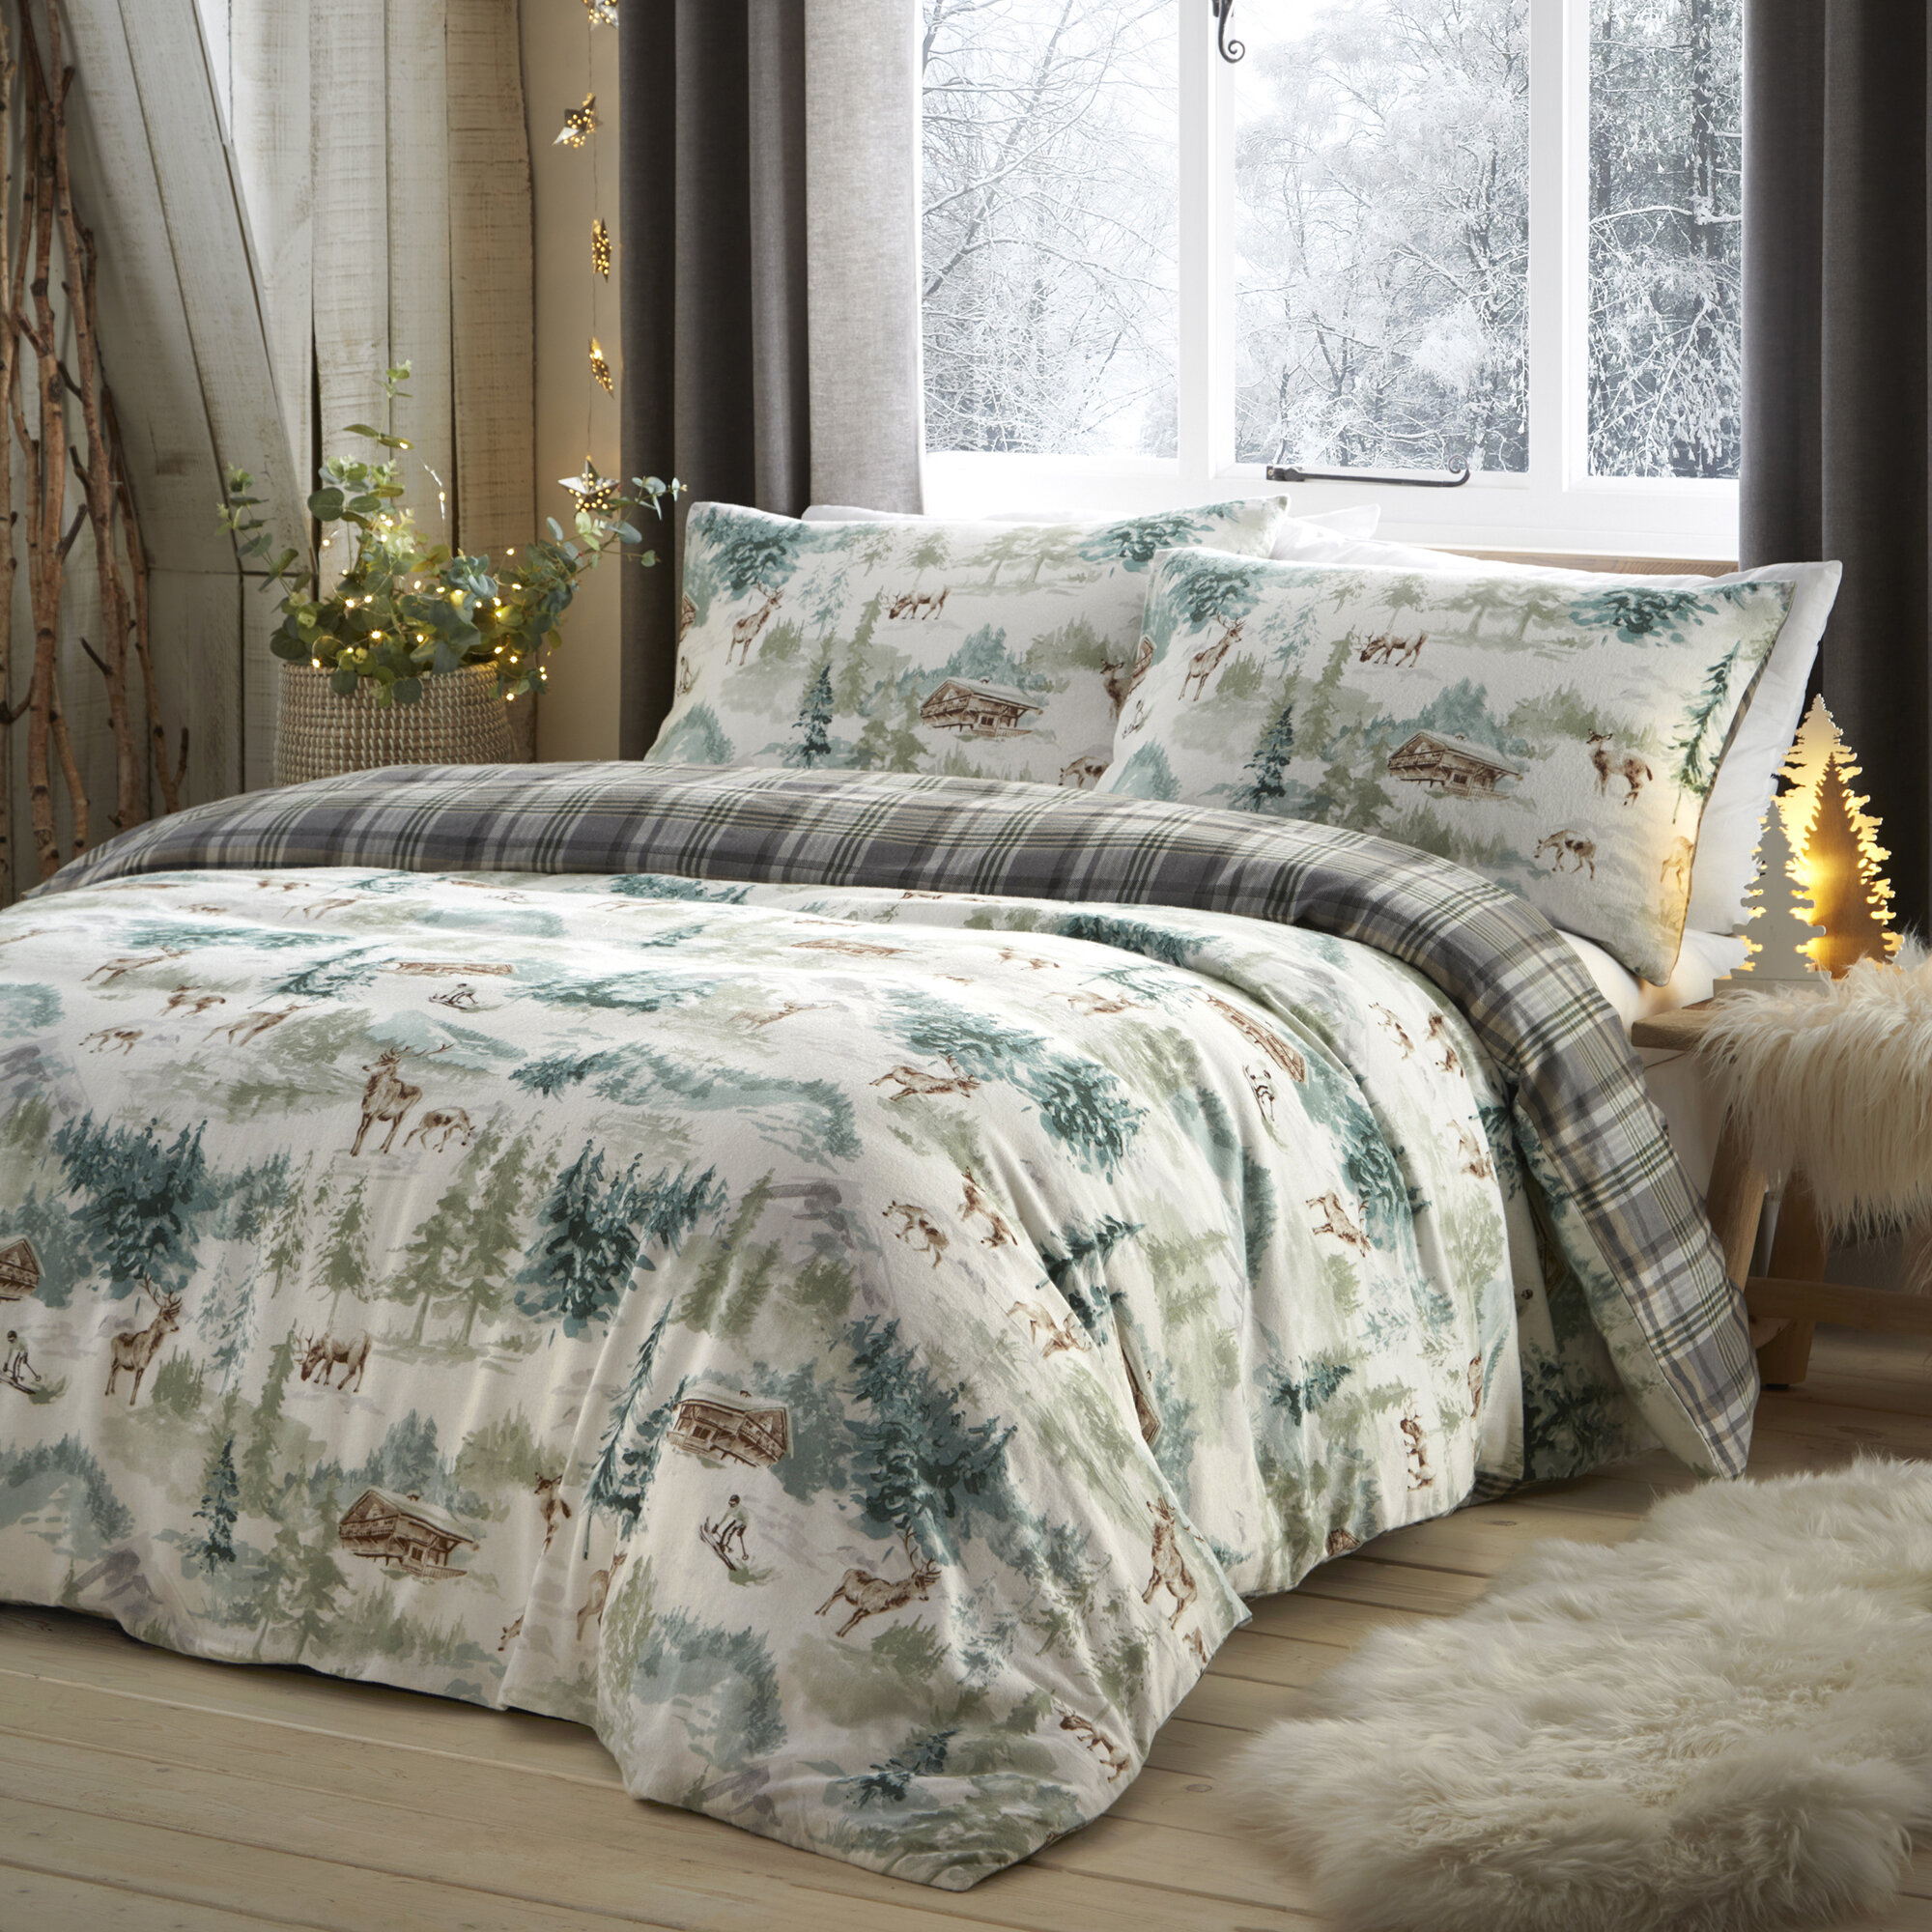 Fusion Home Furnishings Snow Scene Brushed Cotton Duvet Cover Set Reviews Wayfair Co Uk